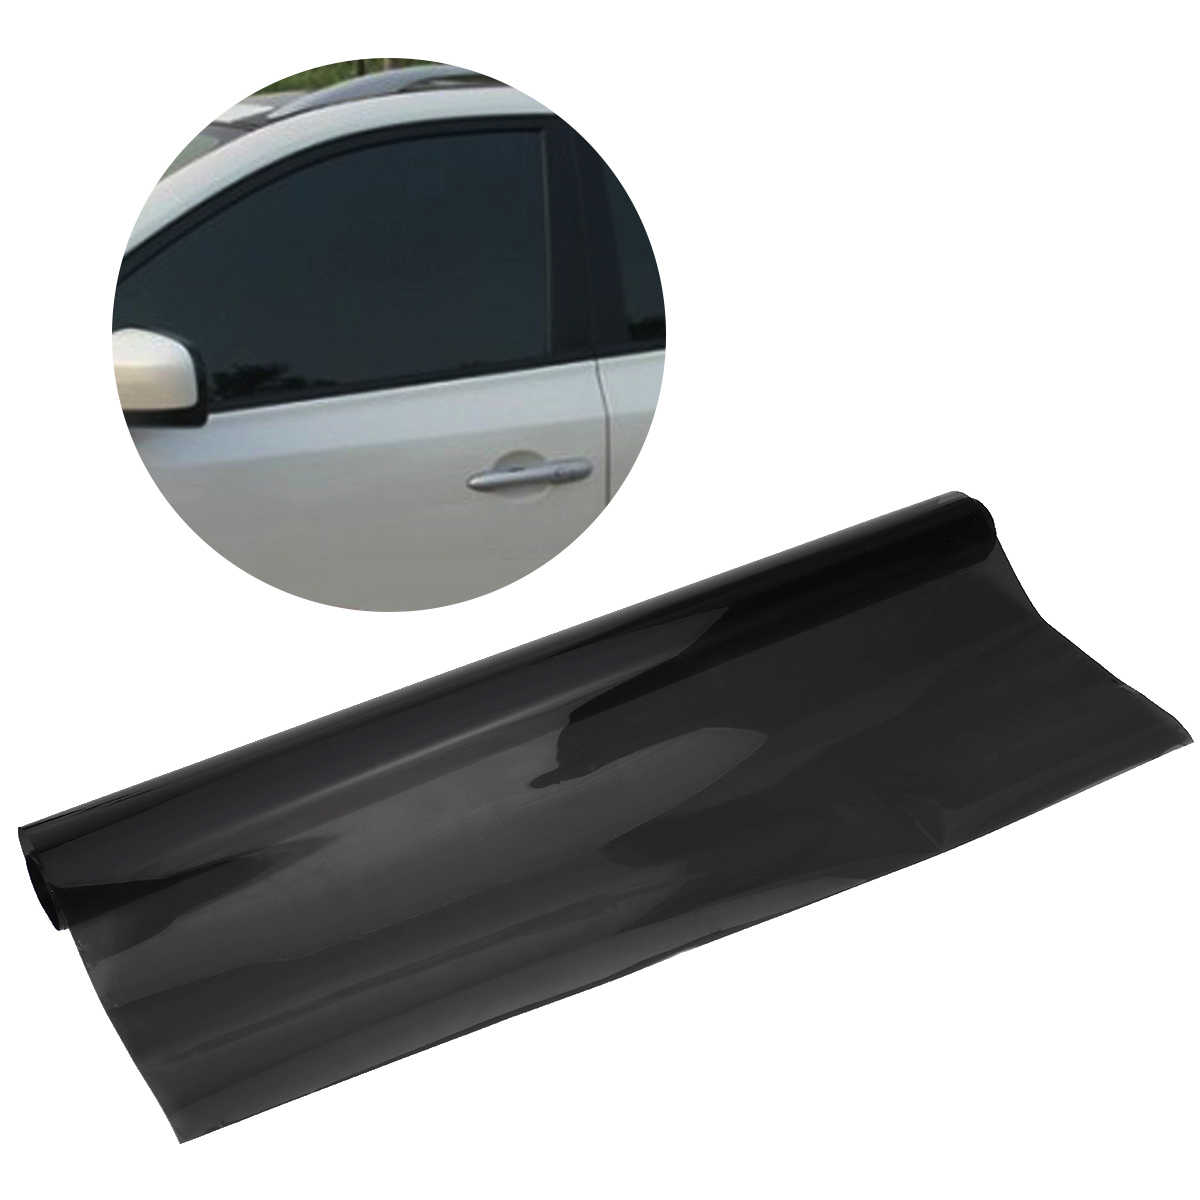 75cm × 6M Car Van Window Tint Film Universal Fit For Privacy Anti Sun Glare Heat Reduction Sun Visor Protector Car Accessories